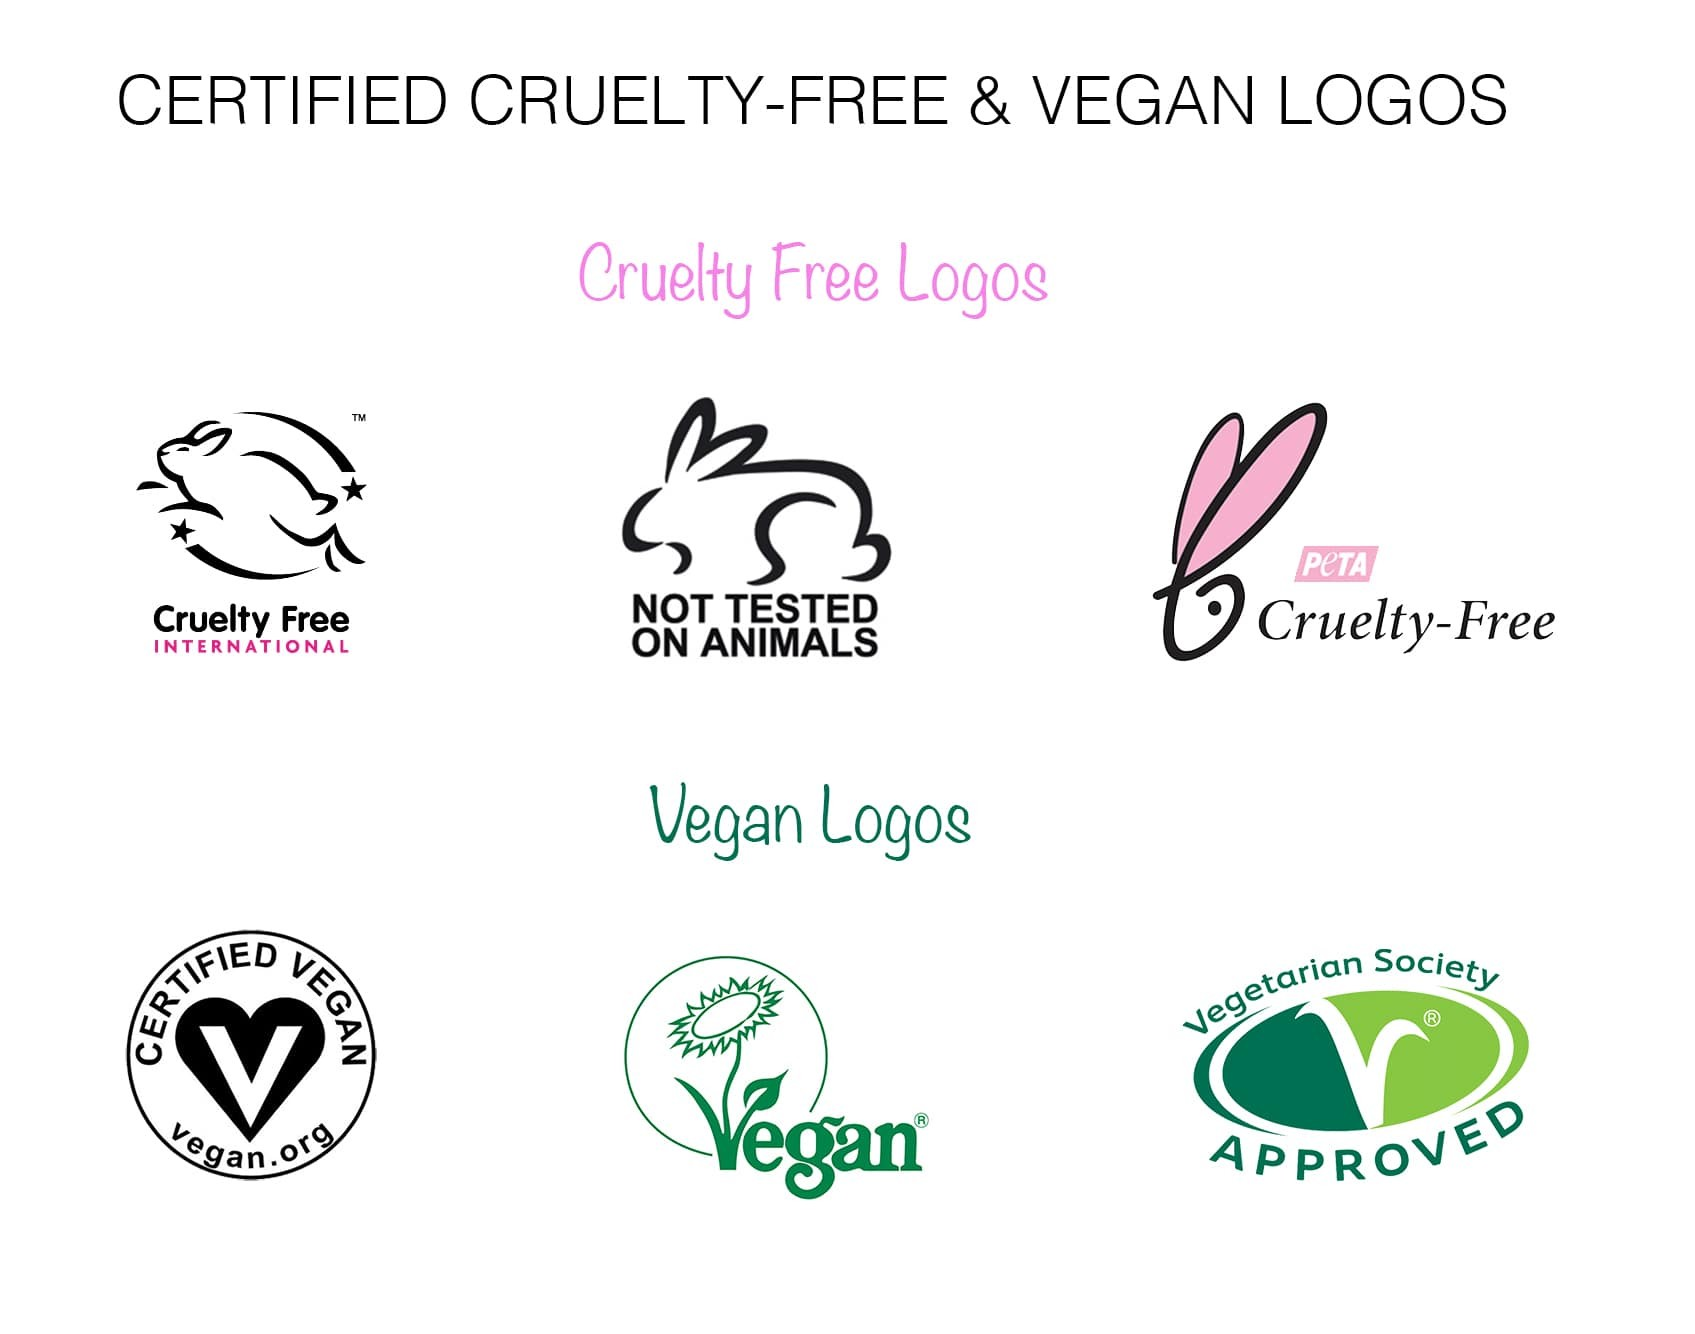 certified cruelty-free and vegan logos provided by ethical pixie.